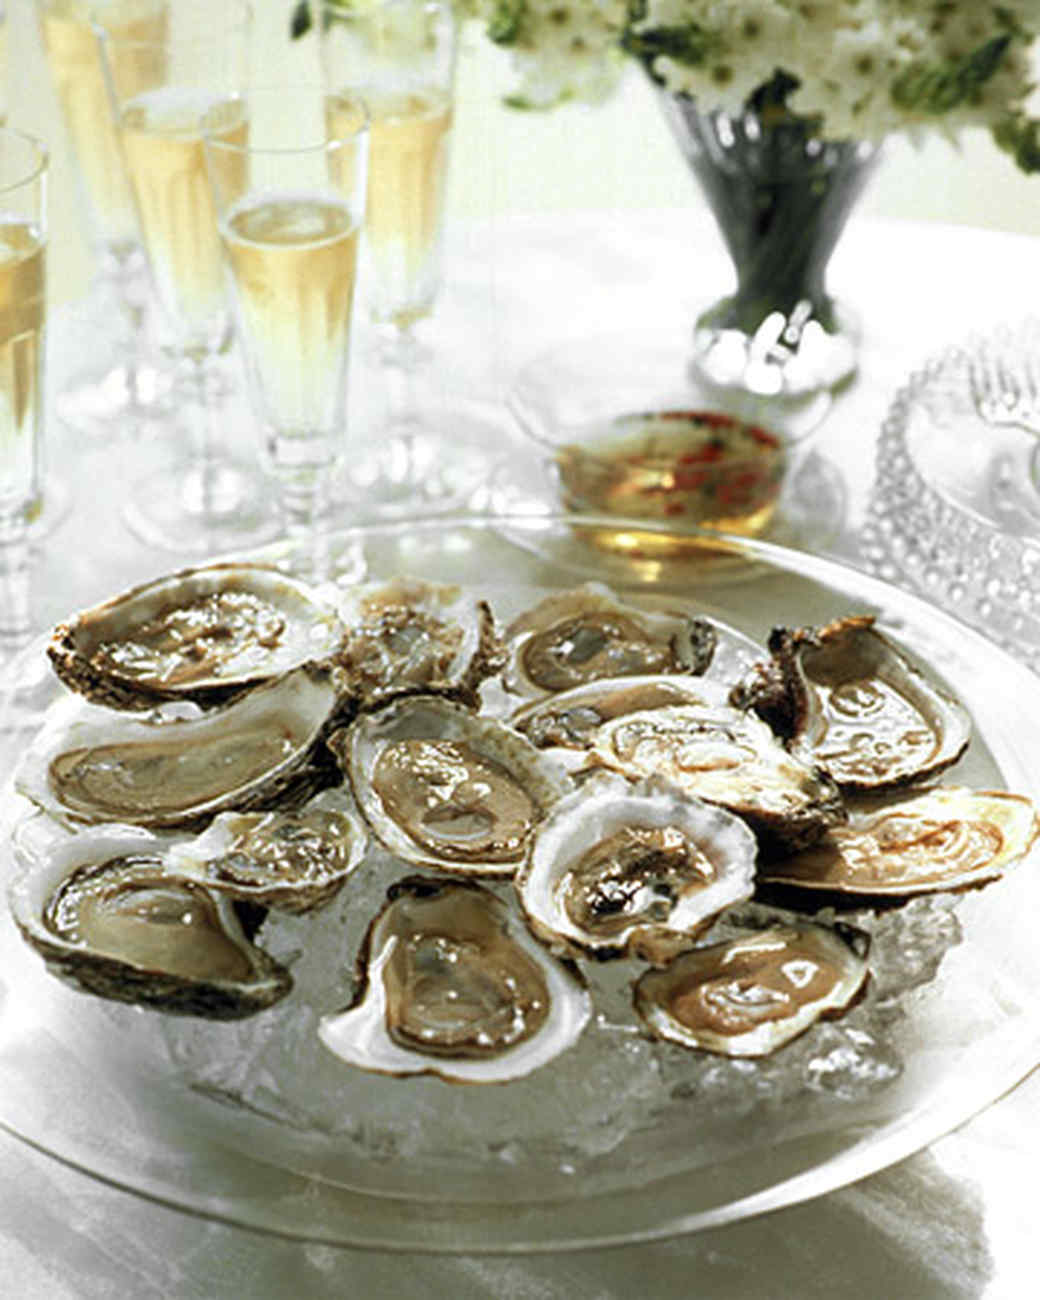 Oysters with Festive Mignonette